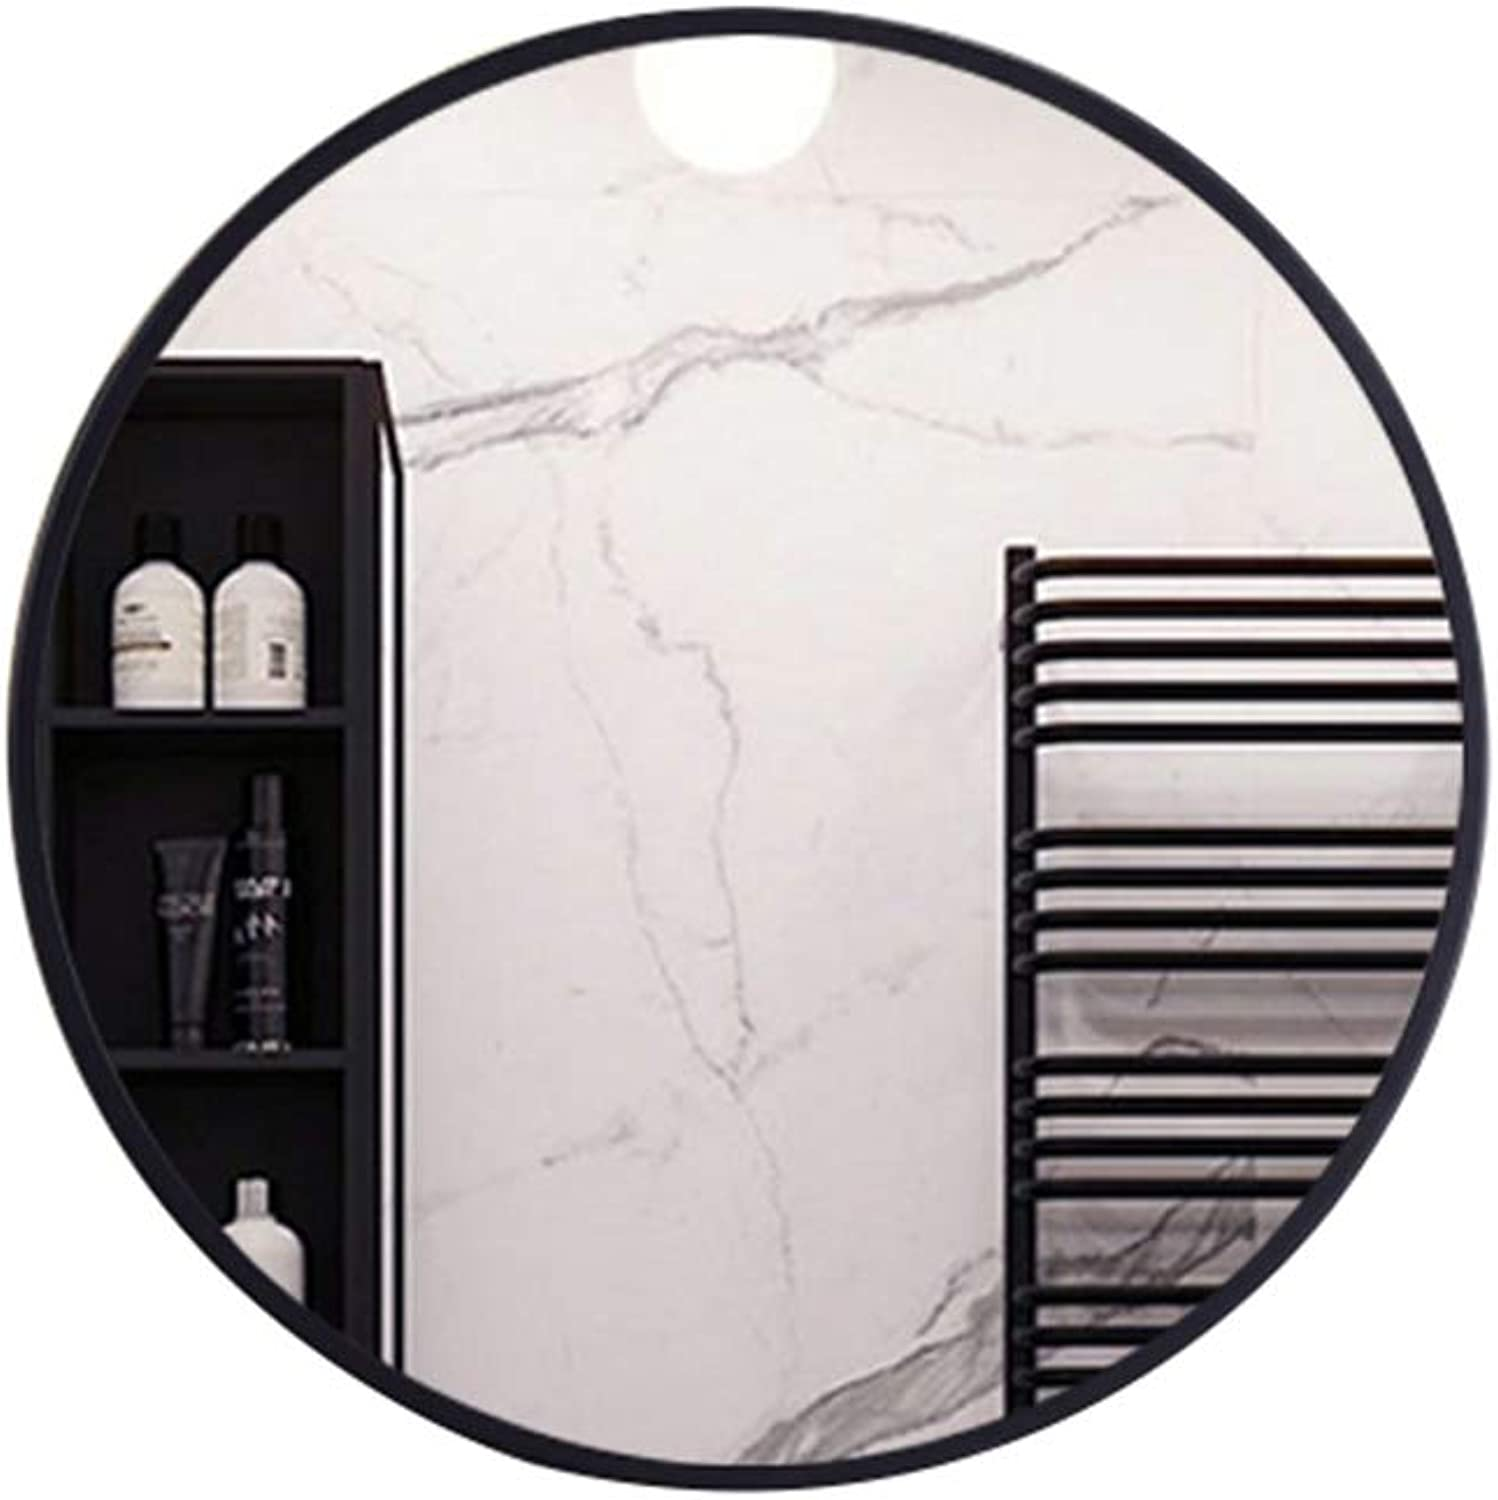 Nordic Round bathroom mirror, Black Wrought Iron Frame, Explosion-Proof Wall-Mounted Bedroom Living Room HD Makeup Mirror